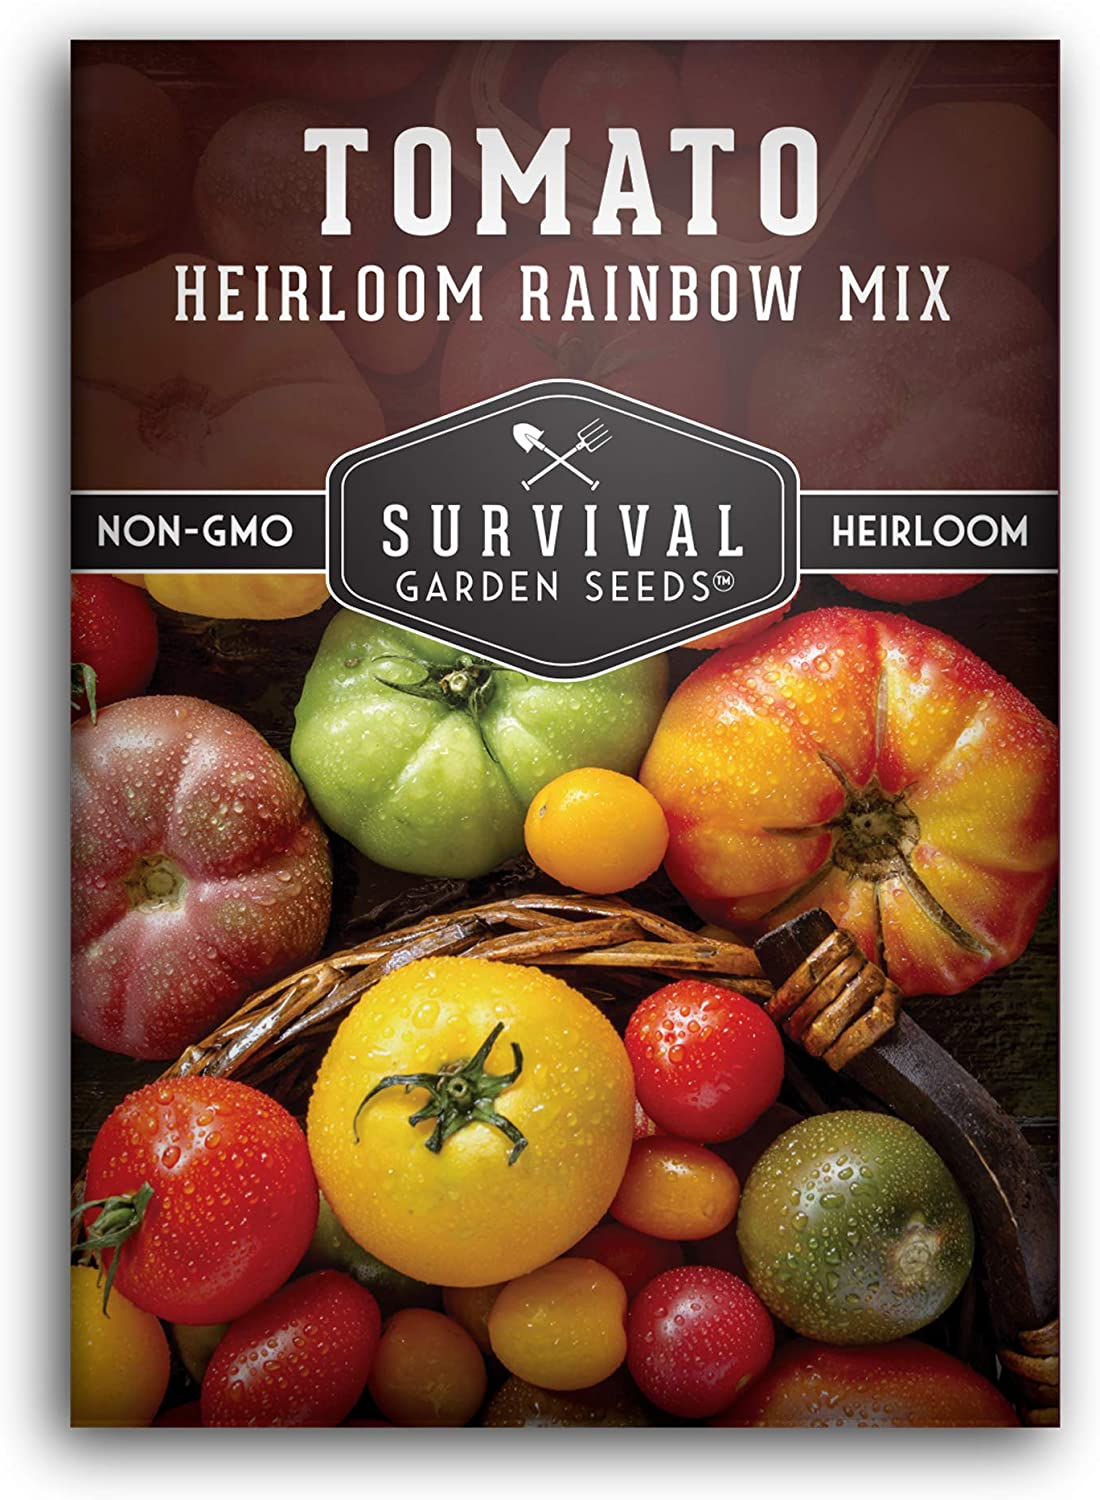 Survival Garden Seeds - Heirloom Rainbow Blend Tomato Seed for Planting - Packet with Instructions to Plant and Grow Your Home Vegetable Garden - Non-GMO Heirloom Variety